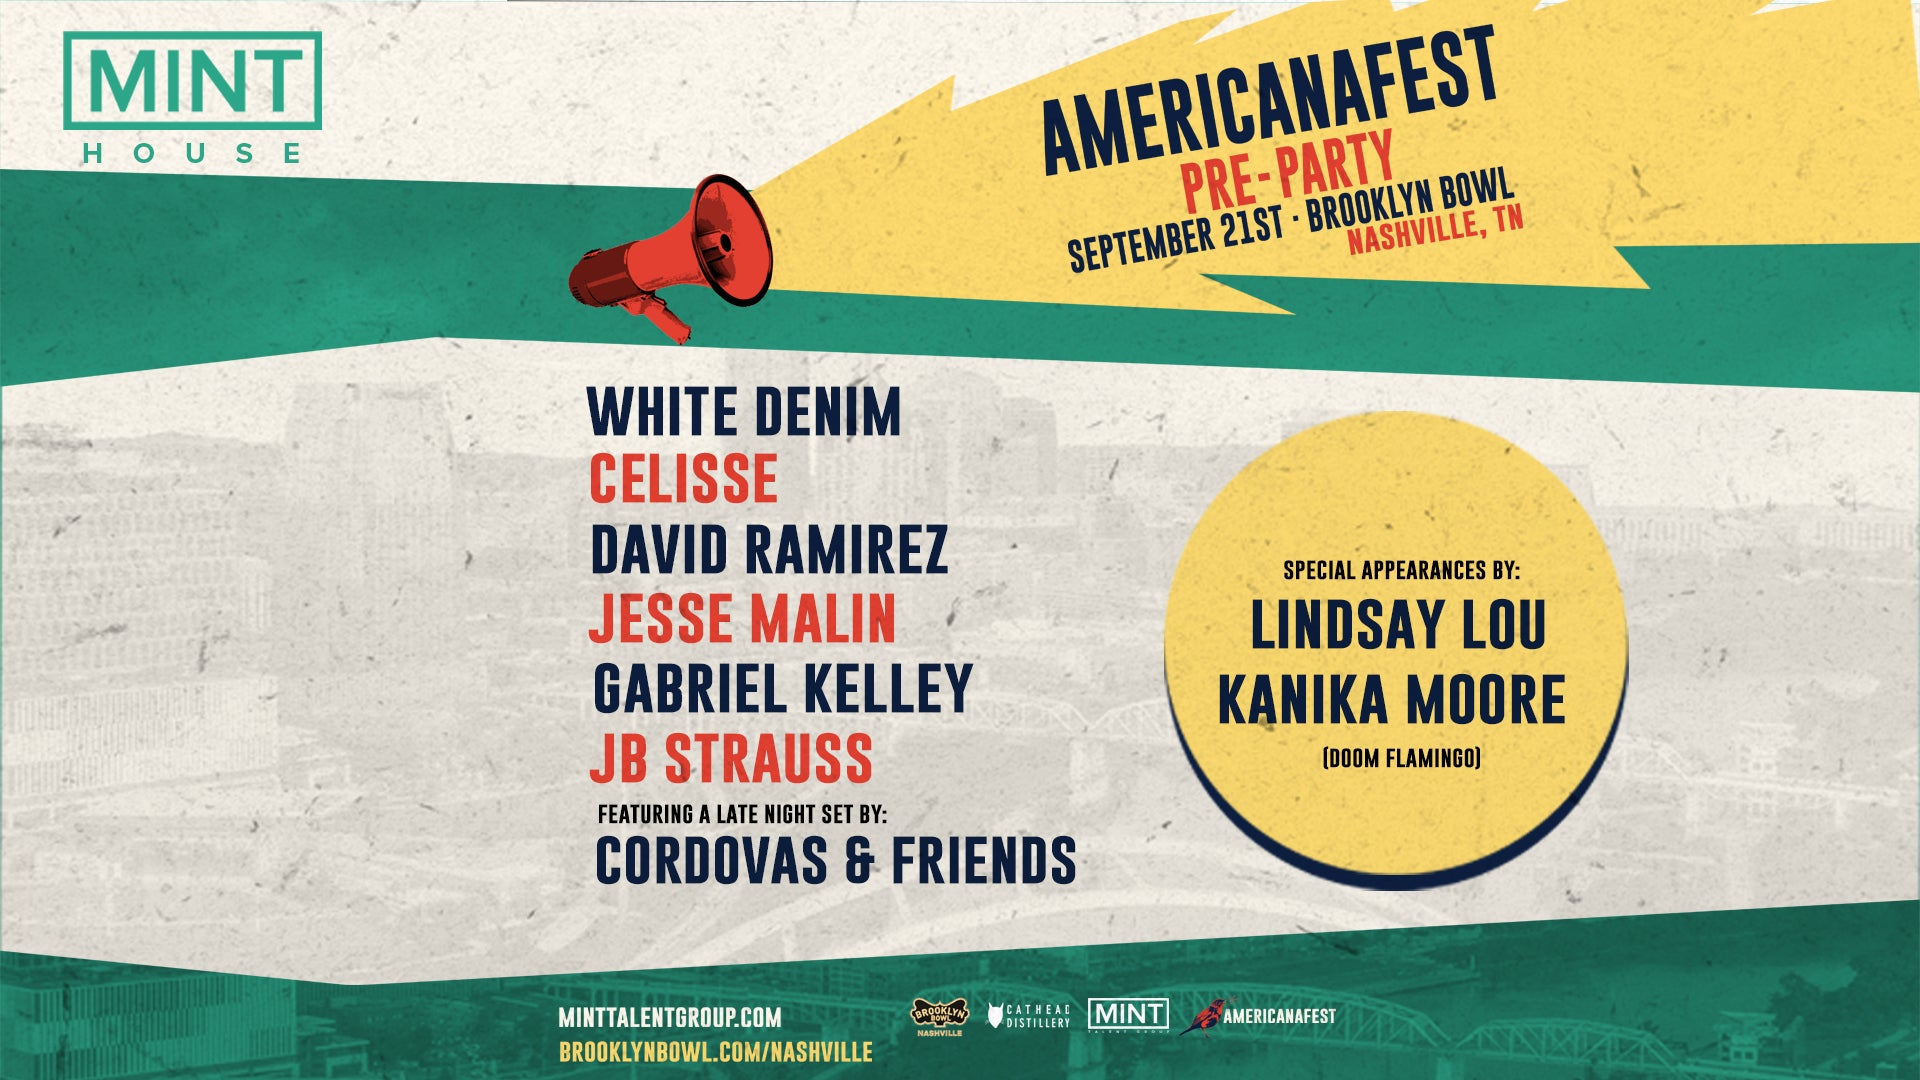 More Info for CONTEST! Mint House's AmericanaFest Pre-Party: White Denim, Celisse, David Ramirez + More Tickets + $100 Gift Card!